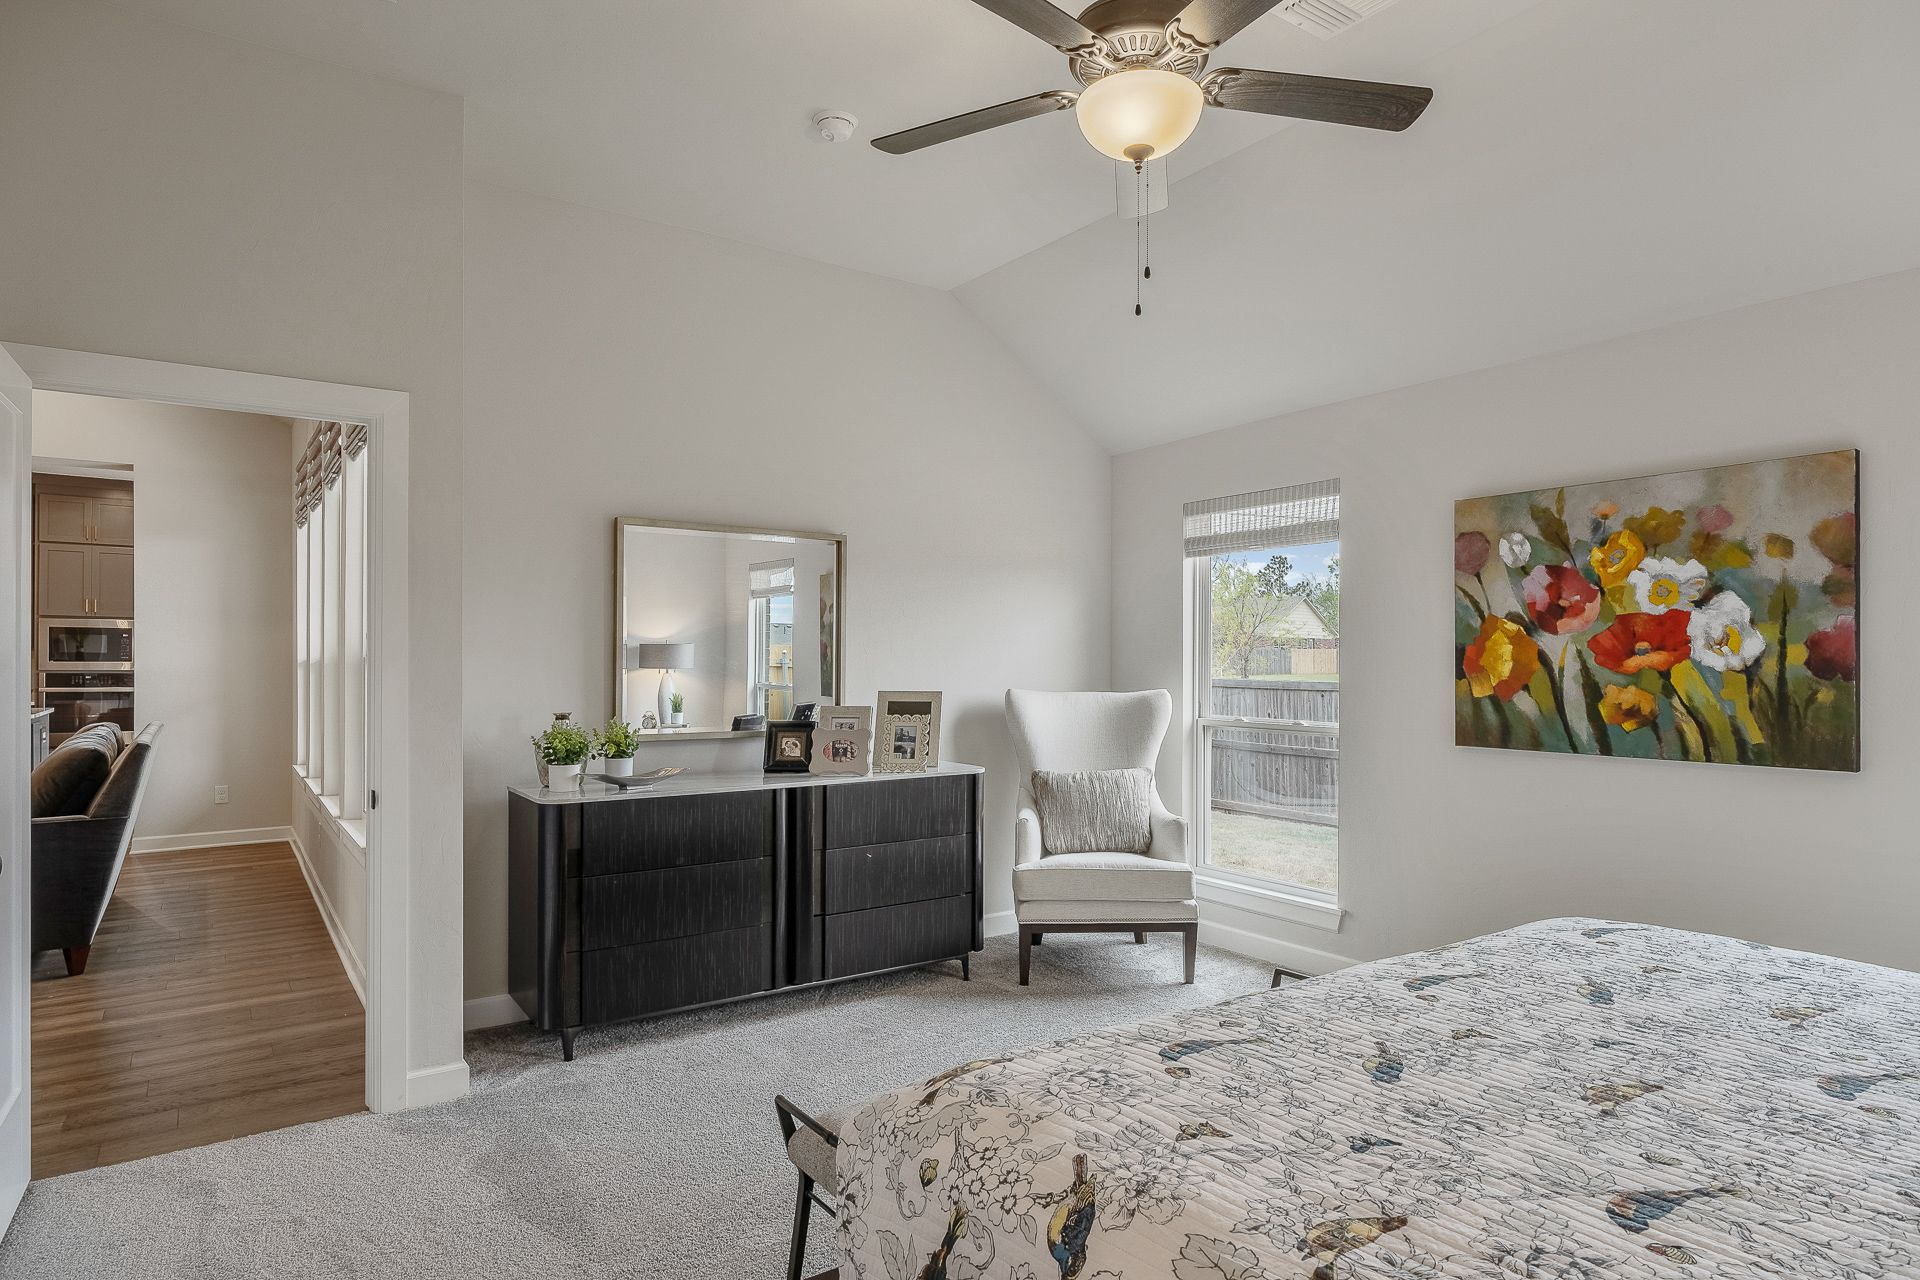 Bedroom featured in the Orwell By Ideal Homes in Oklahoma City, OK